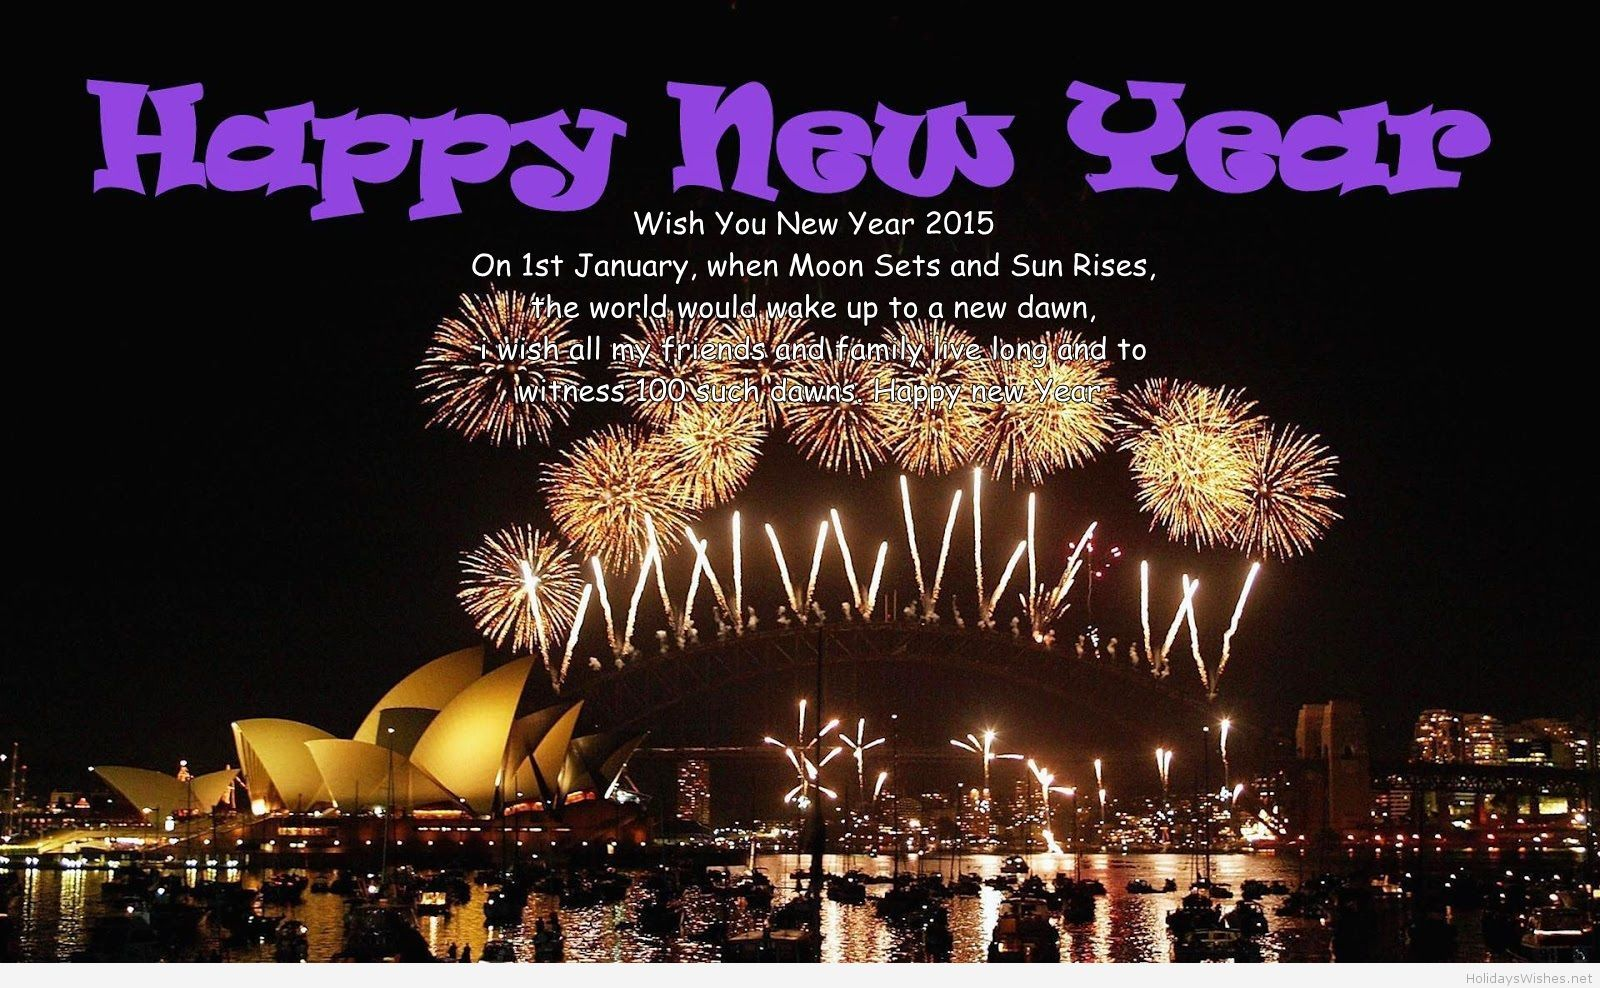 Happy New Year Greetings With Fireworks And Sayings Christmas